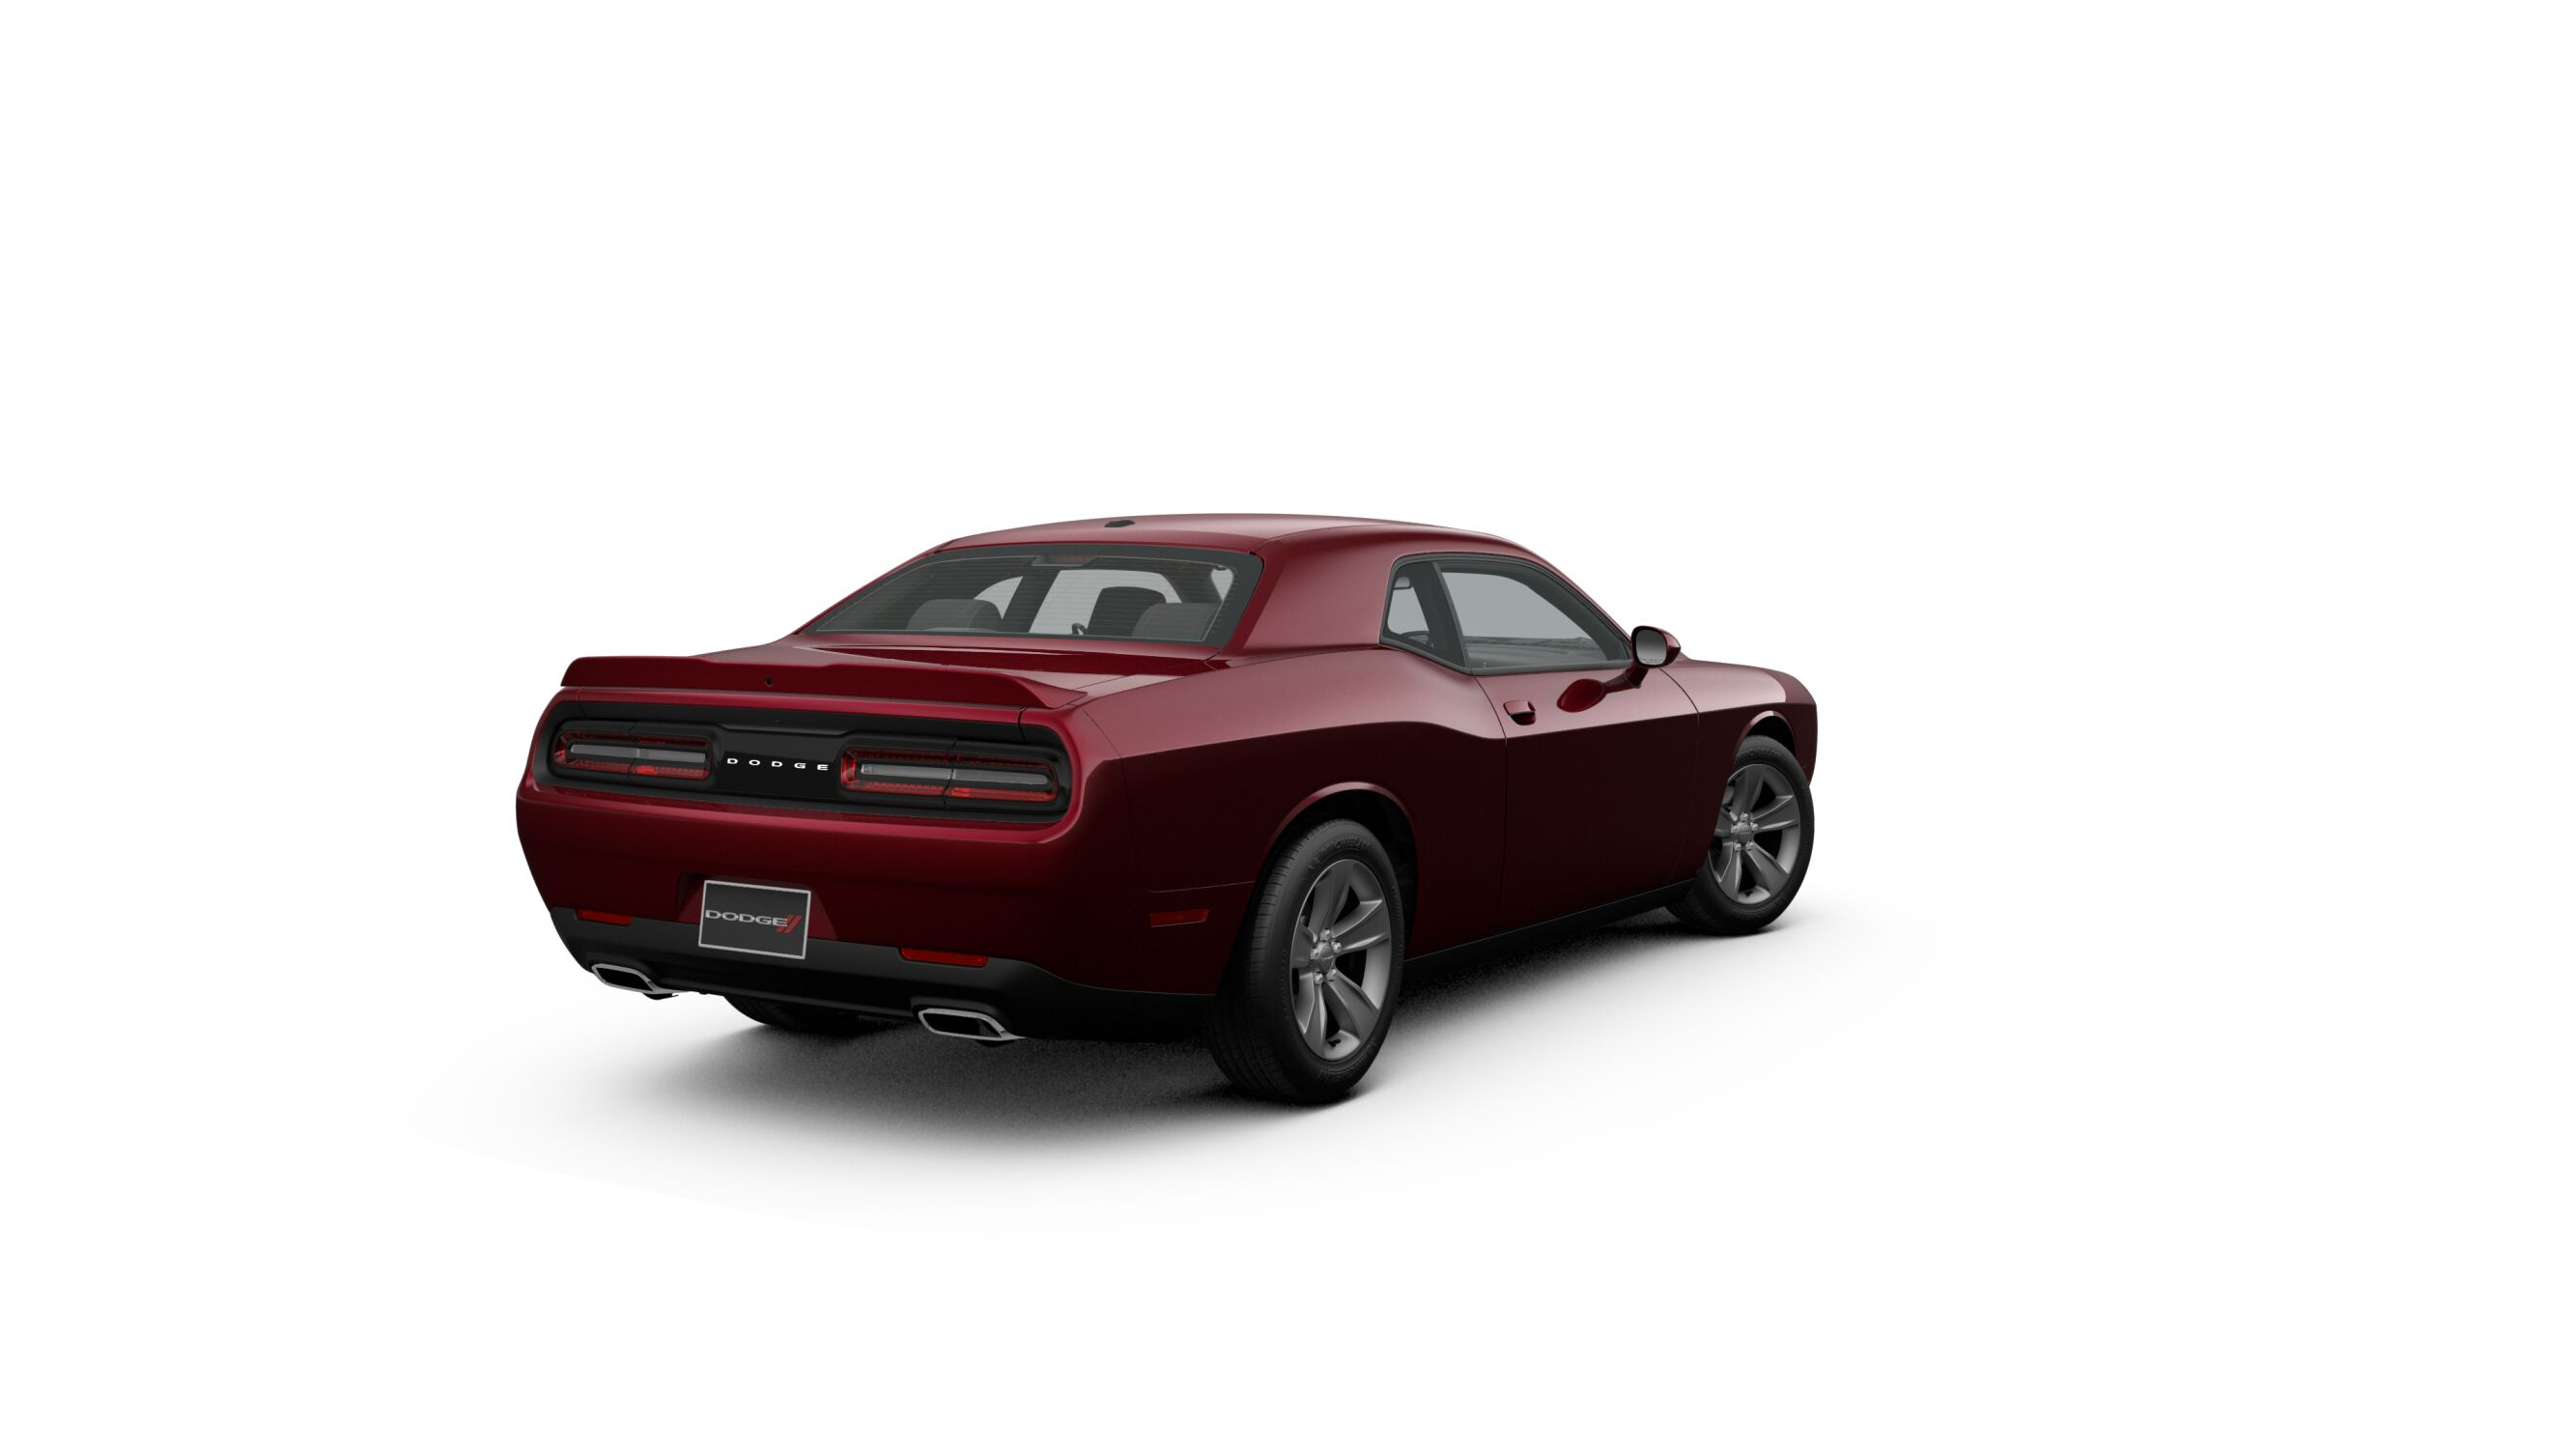 2019 Dodge Challenger SXT Red Exterior Rear View Picture